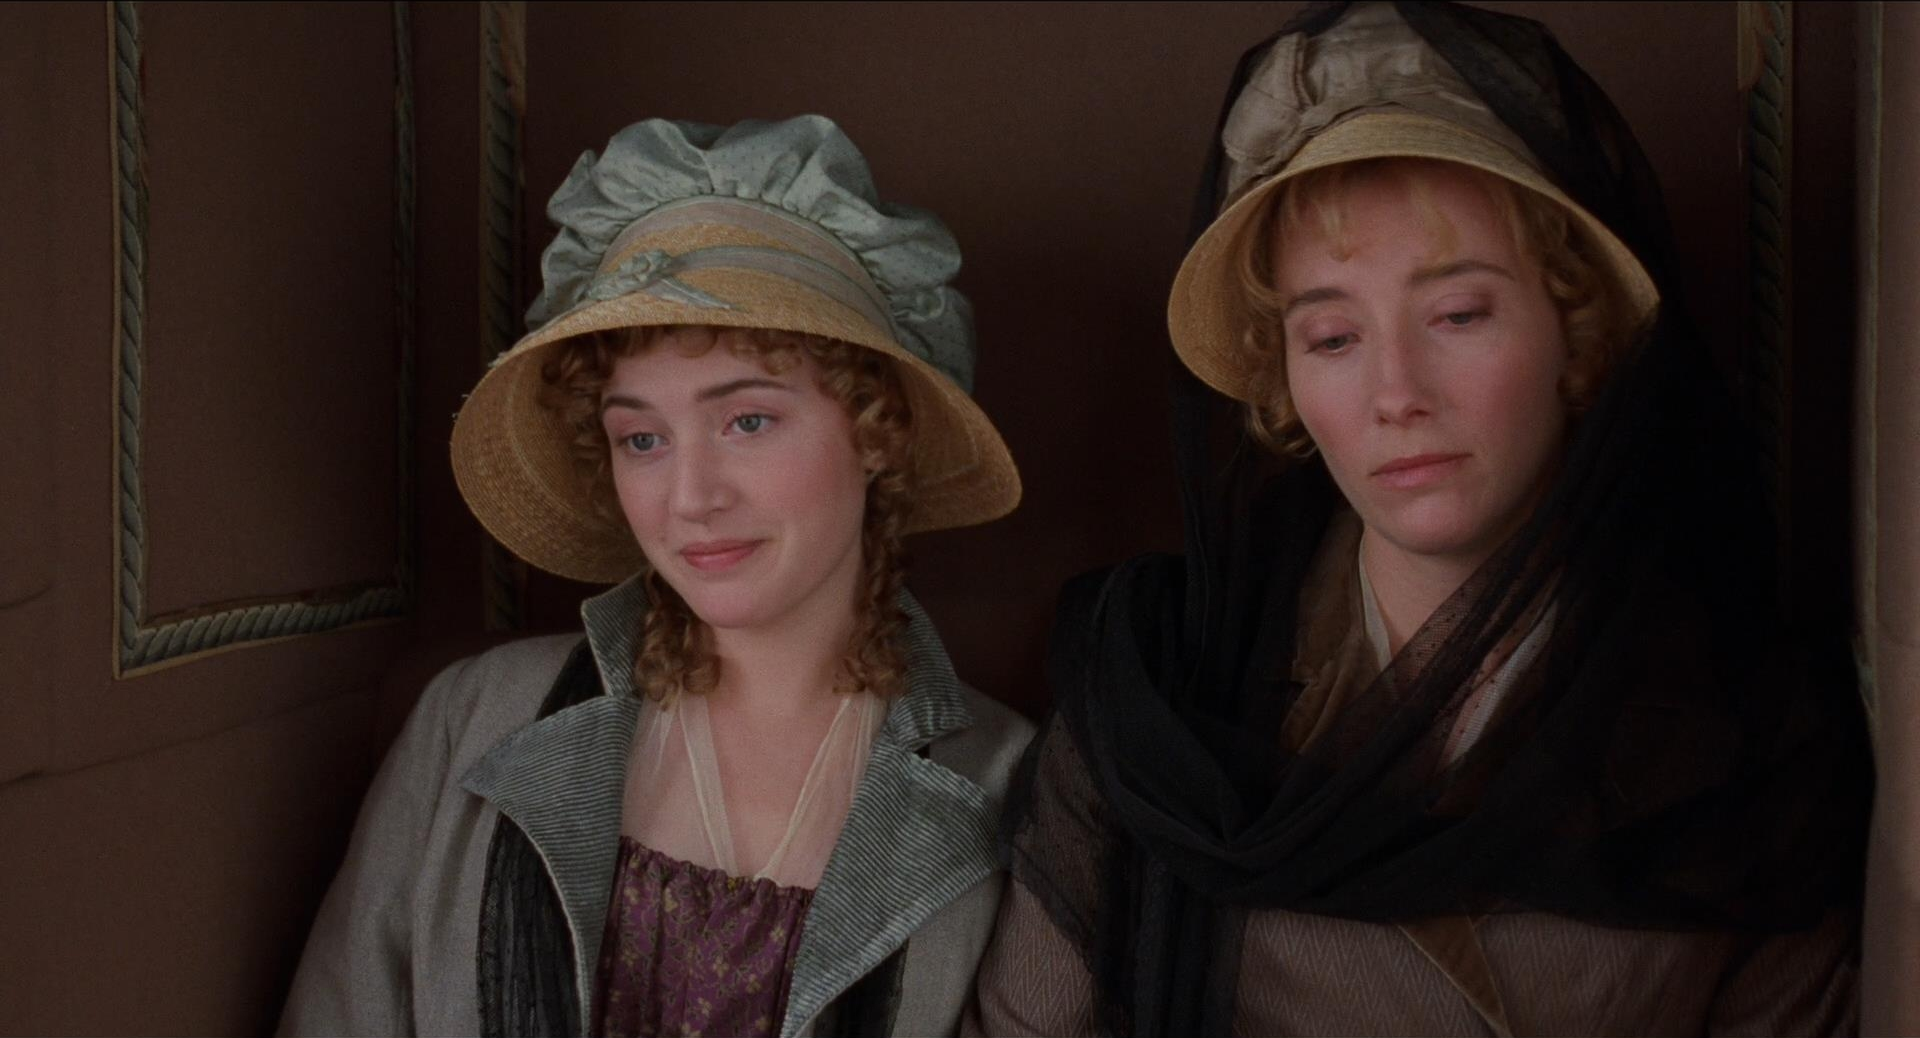 movie review sense and sensibility Fabricated episodes character defamation devious storytelling this is the definitive review of the hollywood movie review sense and sensibility movie review sense and.